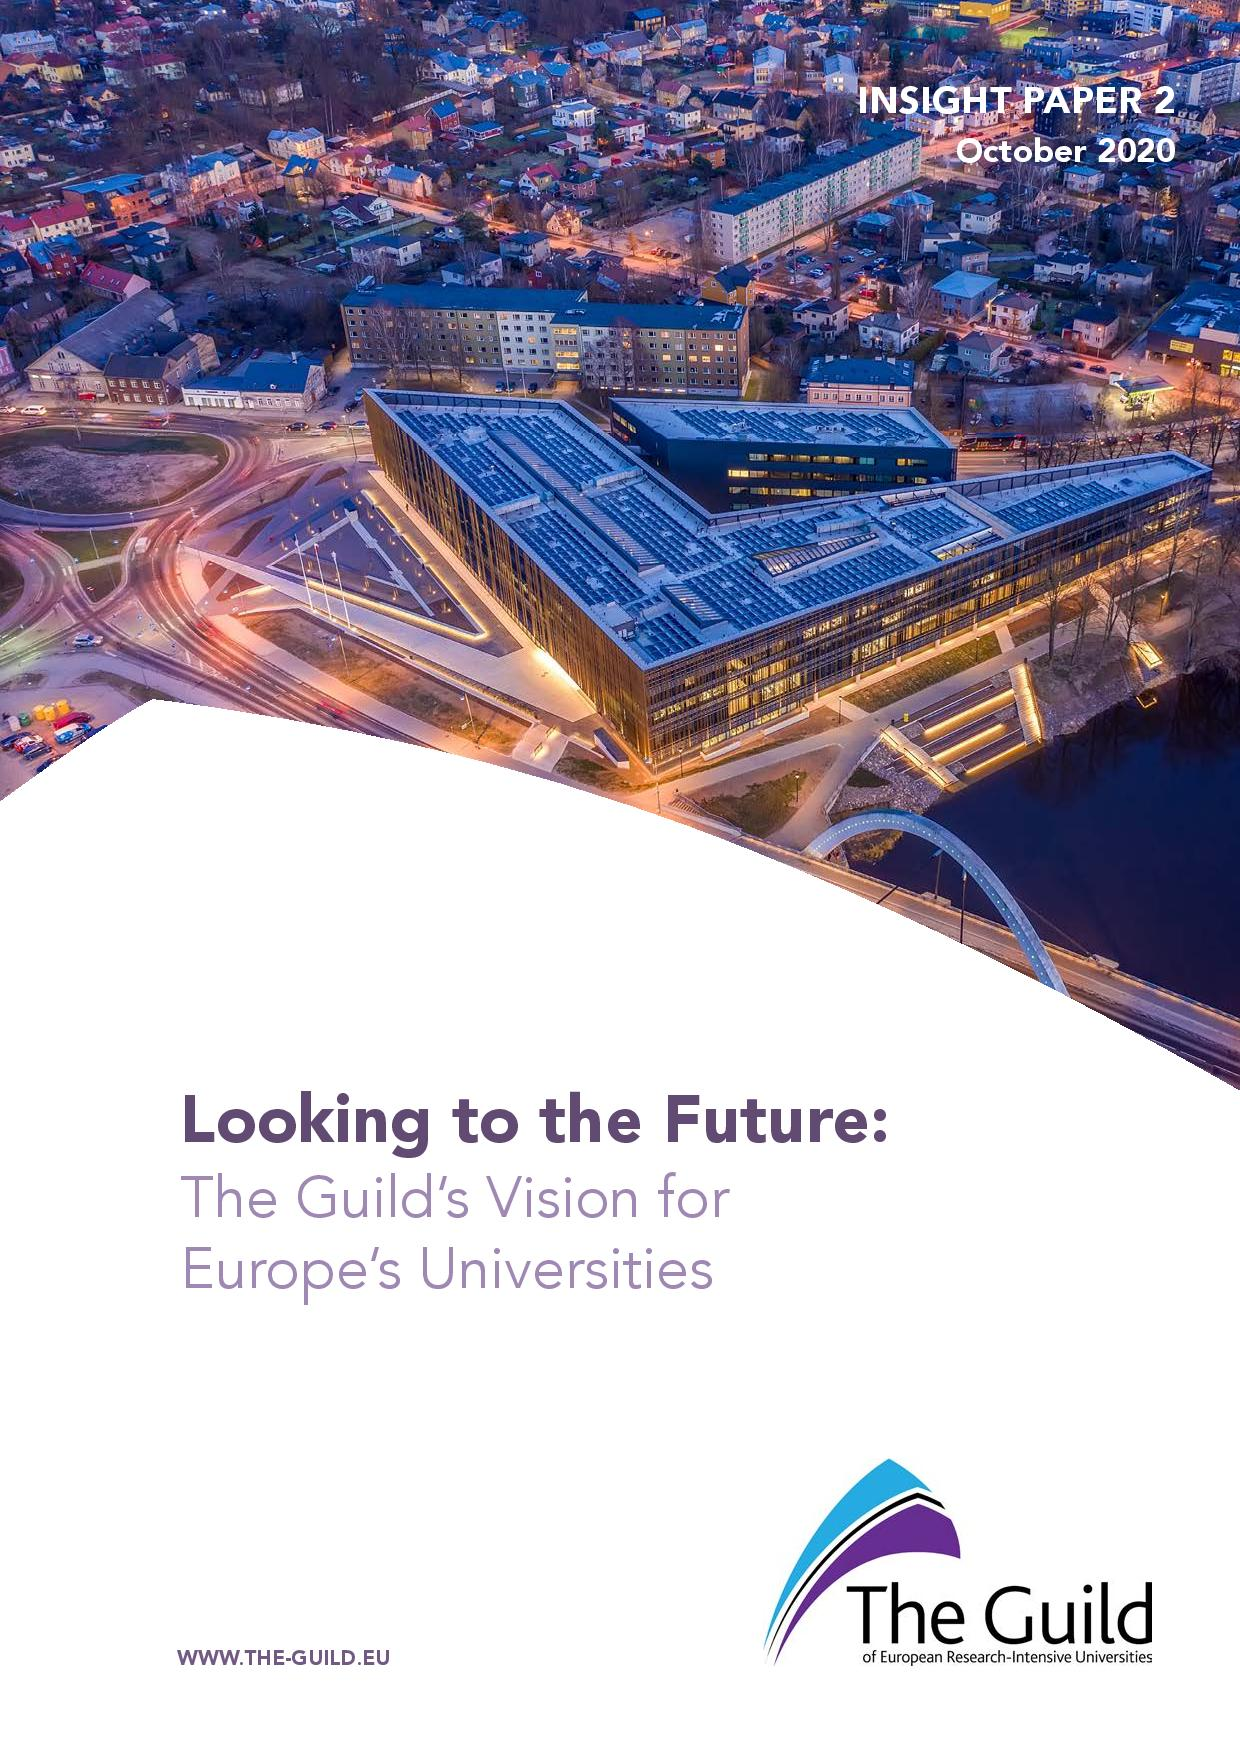 the guild vision for europe universities